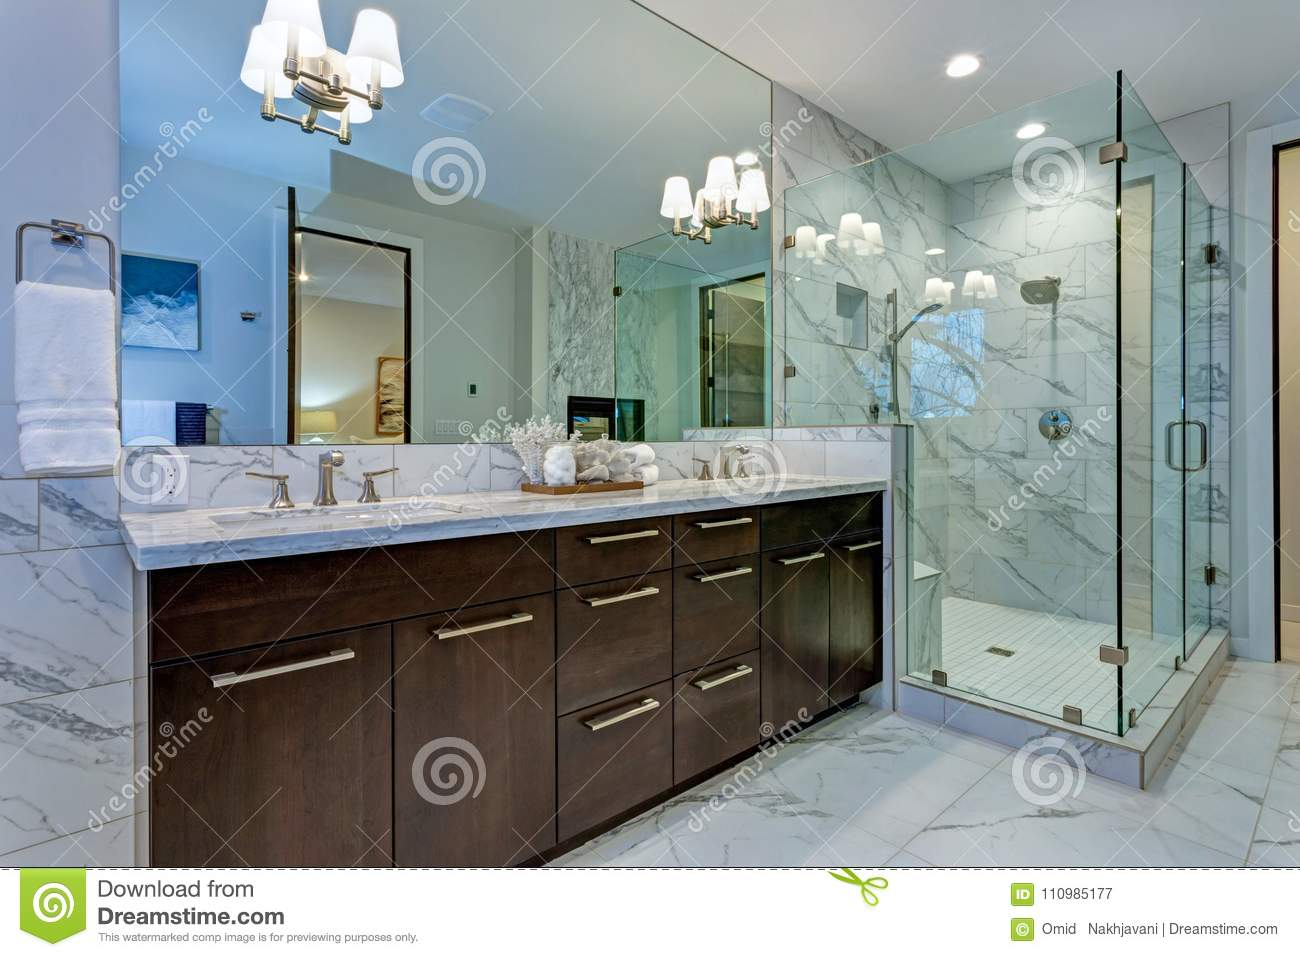 Incredible Master Bathroom With Carrara Marble Tile Surround Stock Image Image Of Floor American 110985177